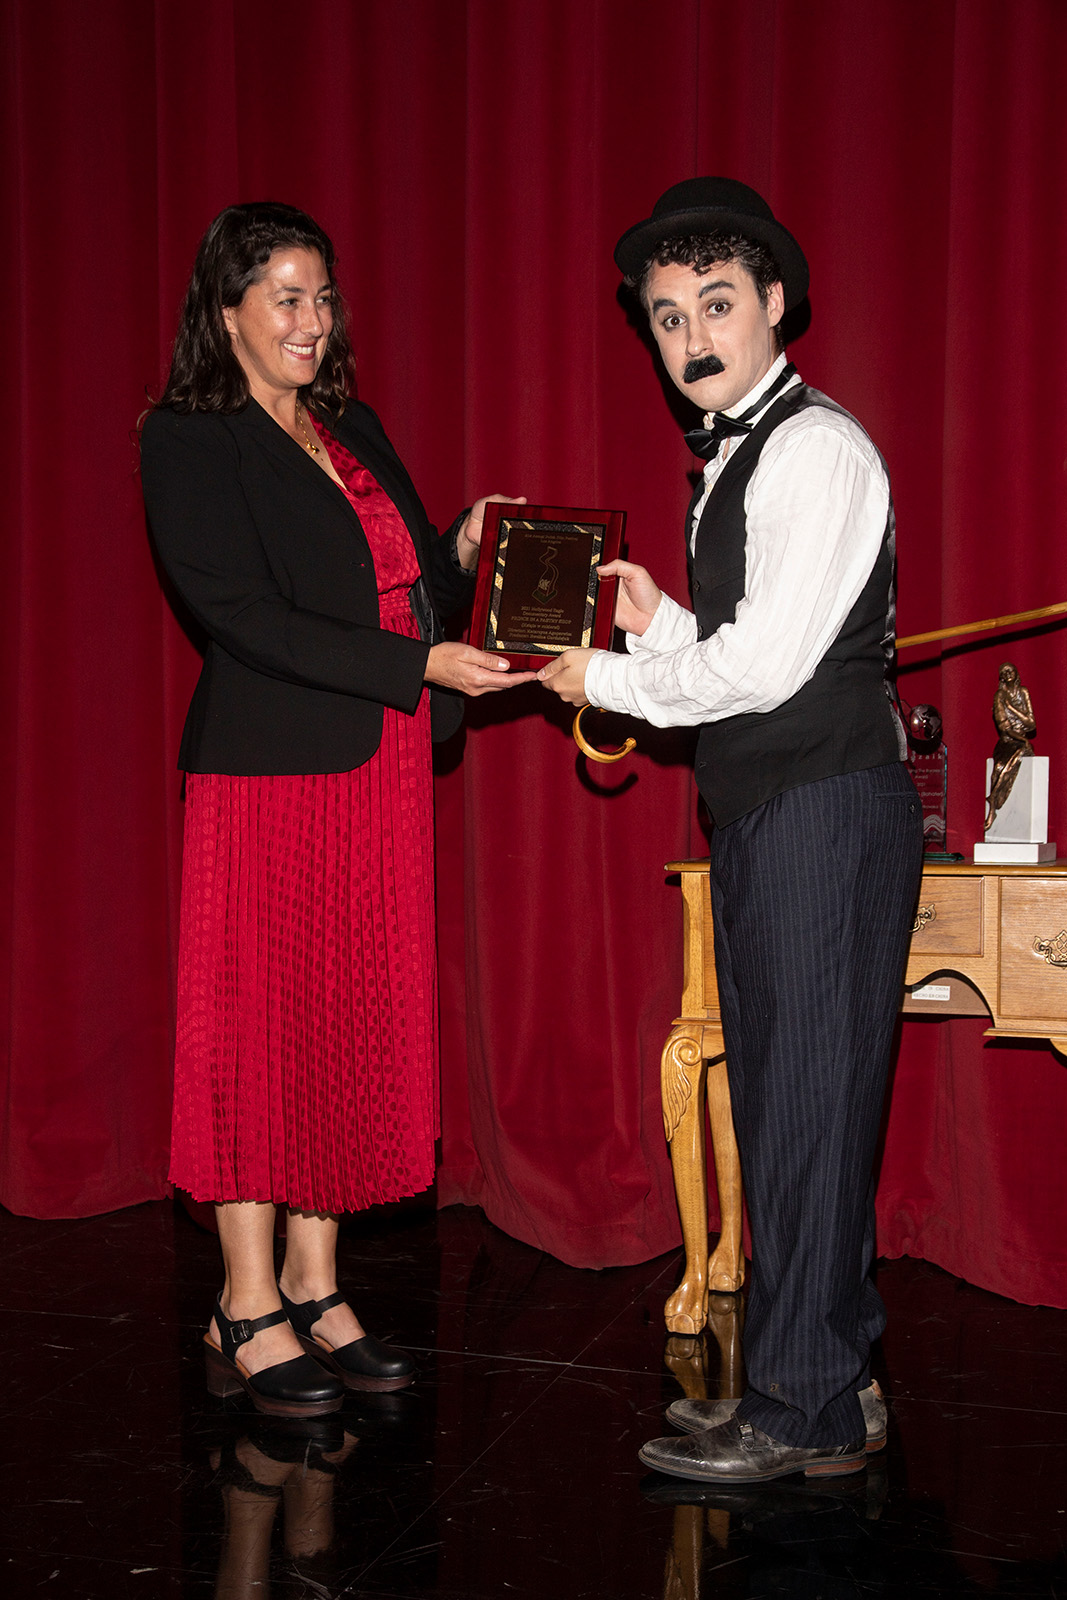 PFFLA 2021 - The Hollywood Eagle Animation Award for 'Prince In a Pastry Shop' by Katarzyna Agopsowicz